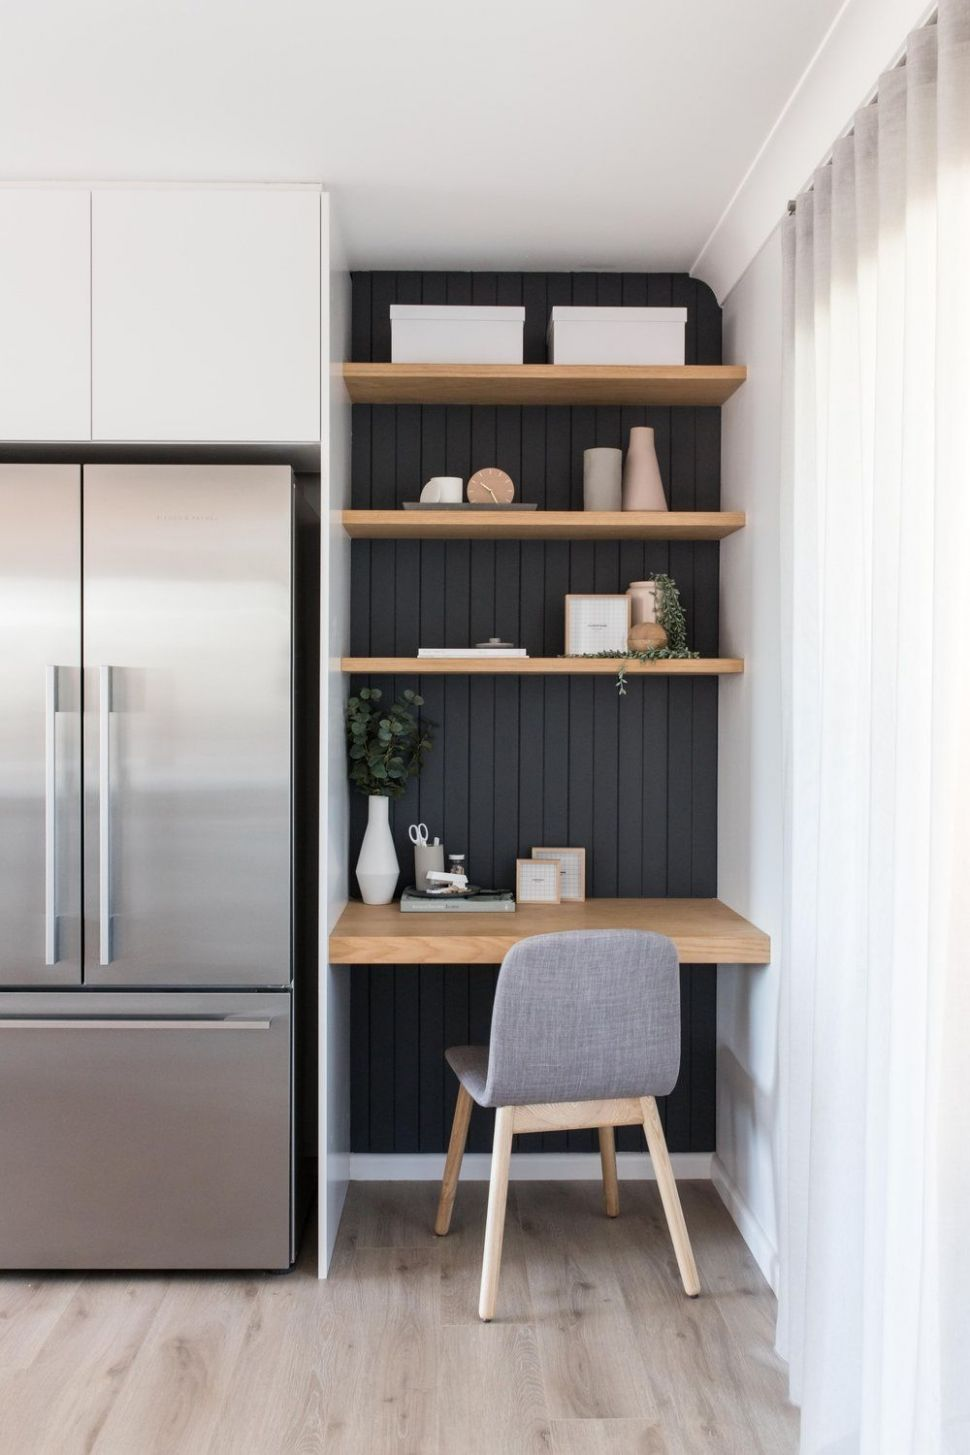 10 Small Space Ideas For Home Office | Kitchen office nook, Small ..